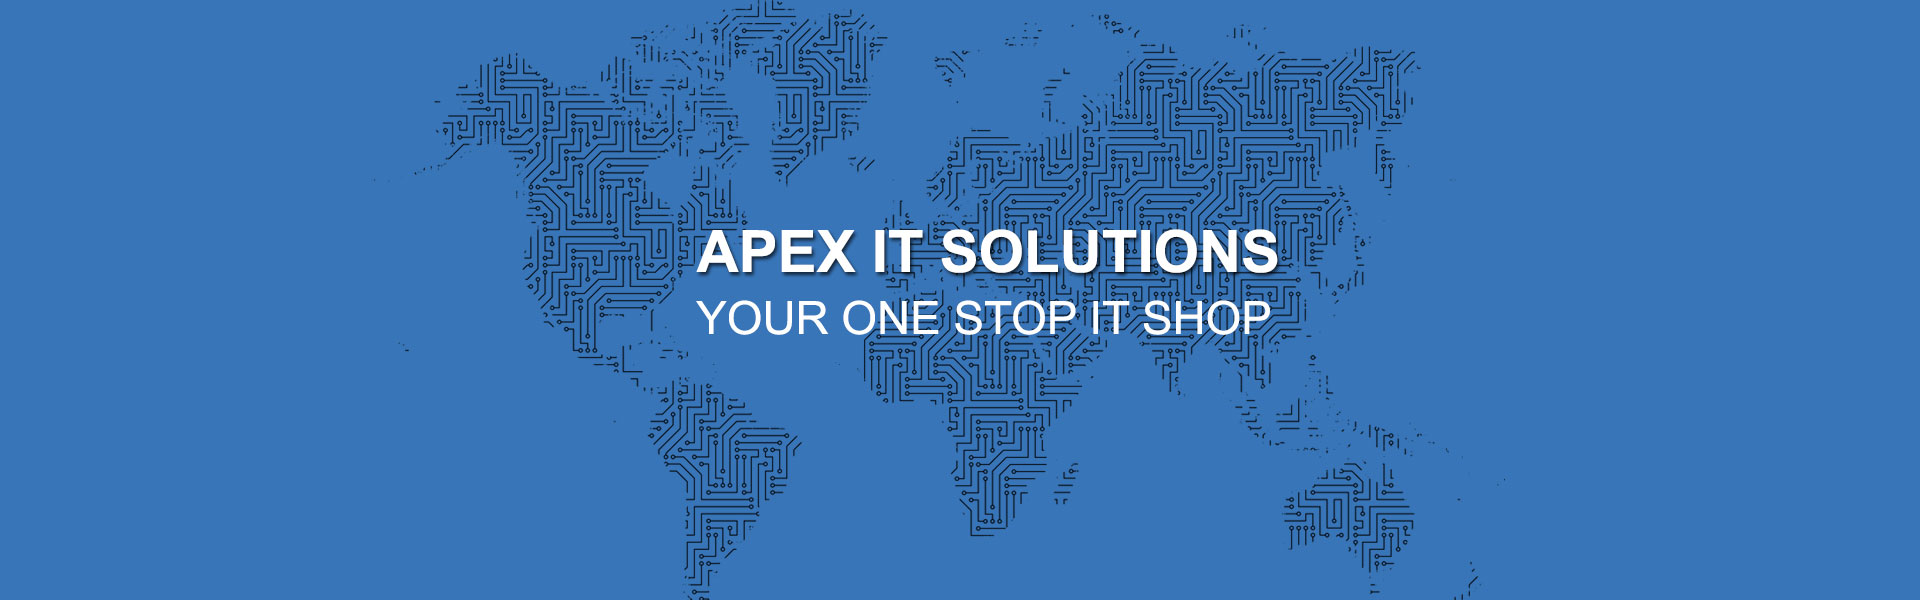 Apex IT Solutions Cape Town